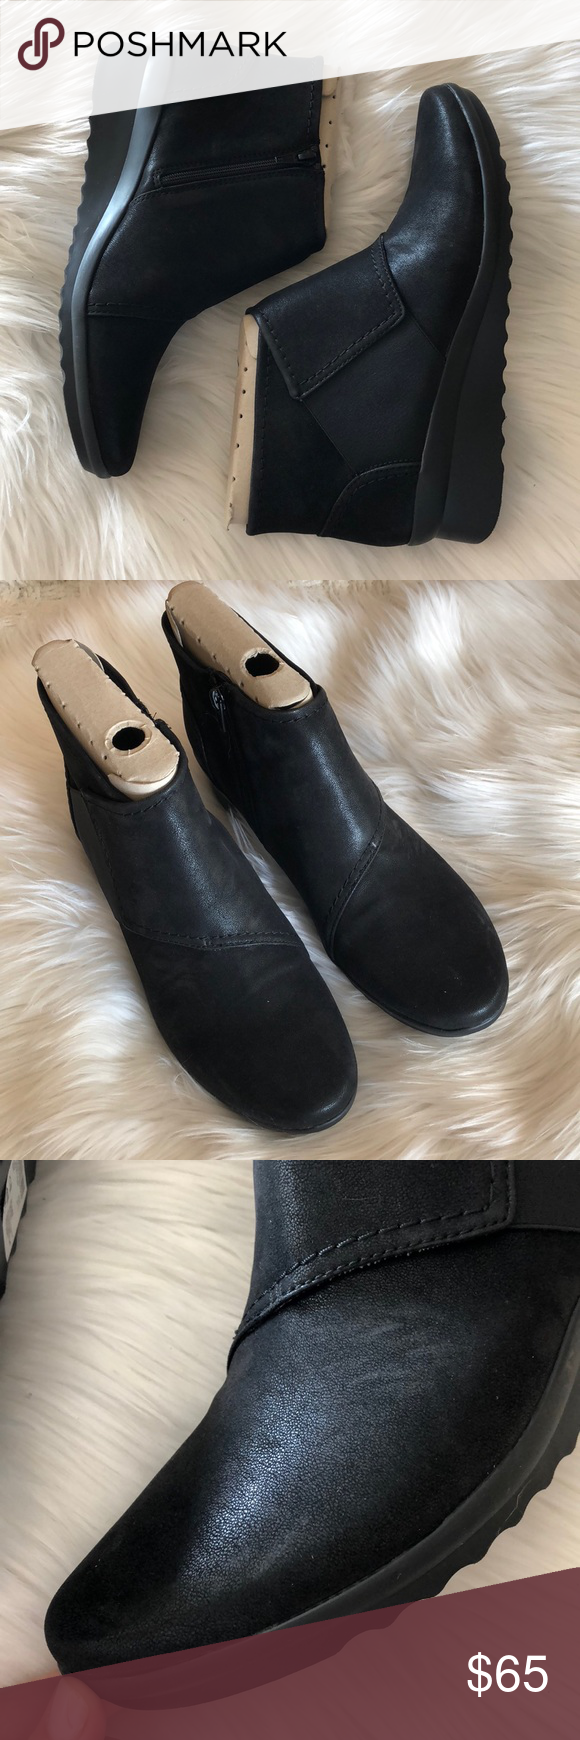 57d8300c42c Cloudsteppers By Clarks Caddell Rush Wedge Bootie Note  size 11 NARROW. New  in box. Excellent condition. Small signs of store wear